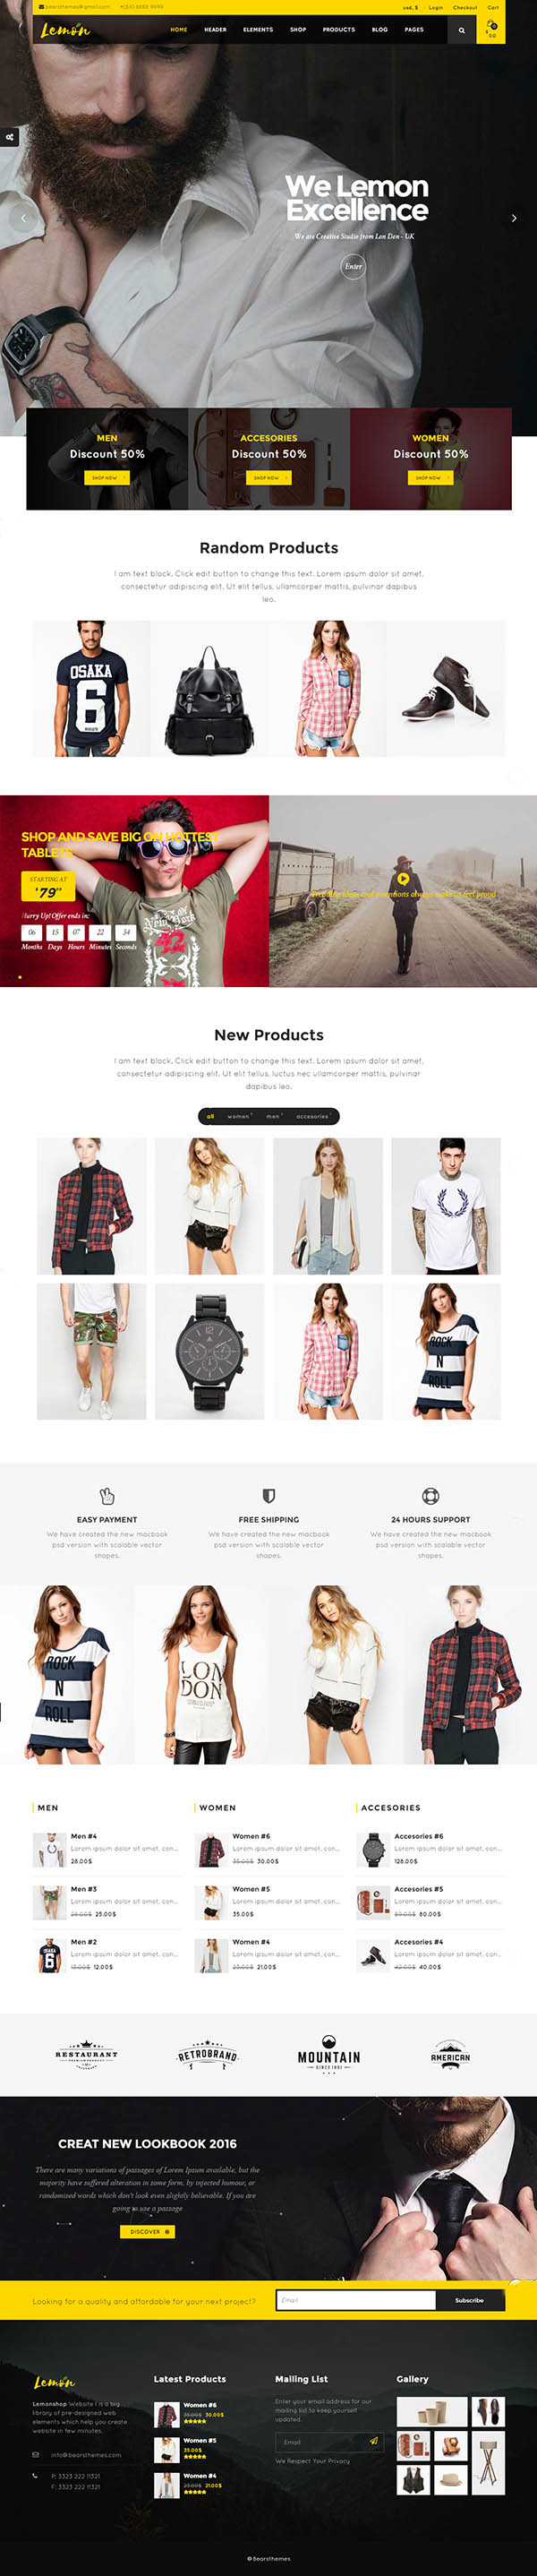 Lemon - A Clean and Smooth WooCommerce WordPress Theme